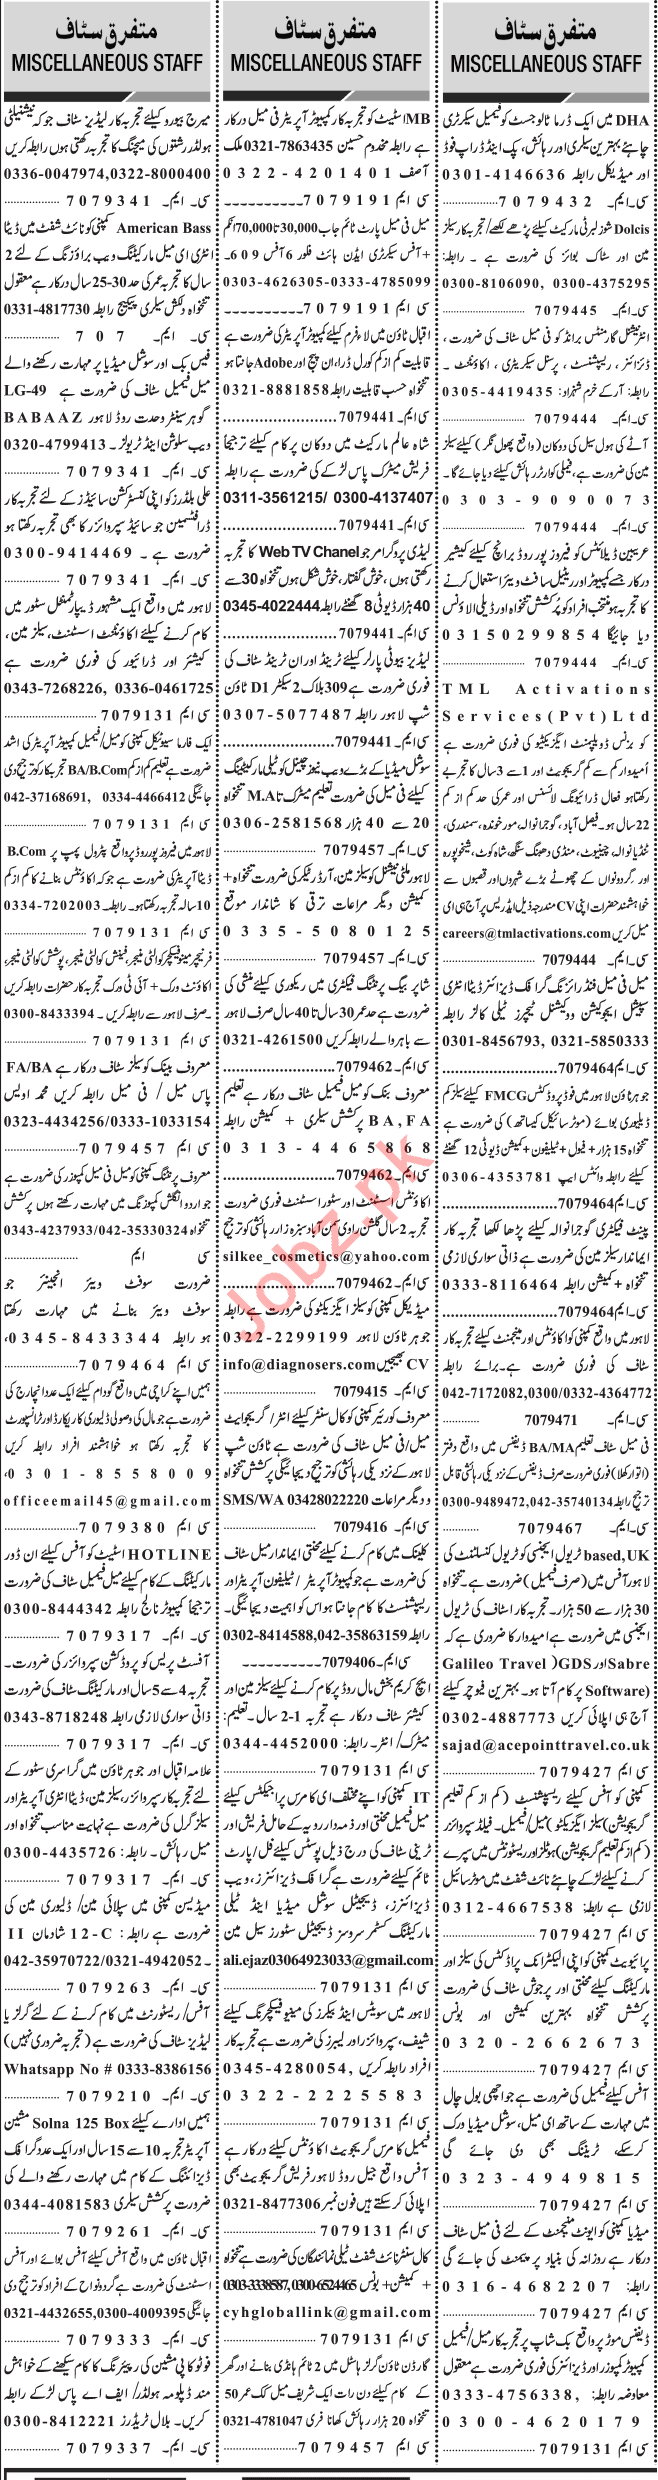 Jang Sunday Classified Ads 9 Feb 2020 for Multiple Staff